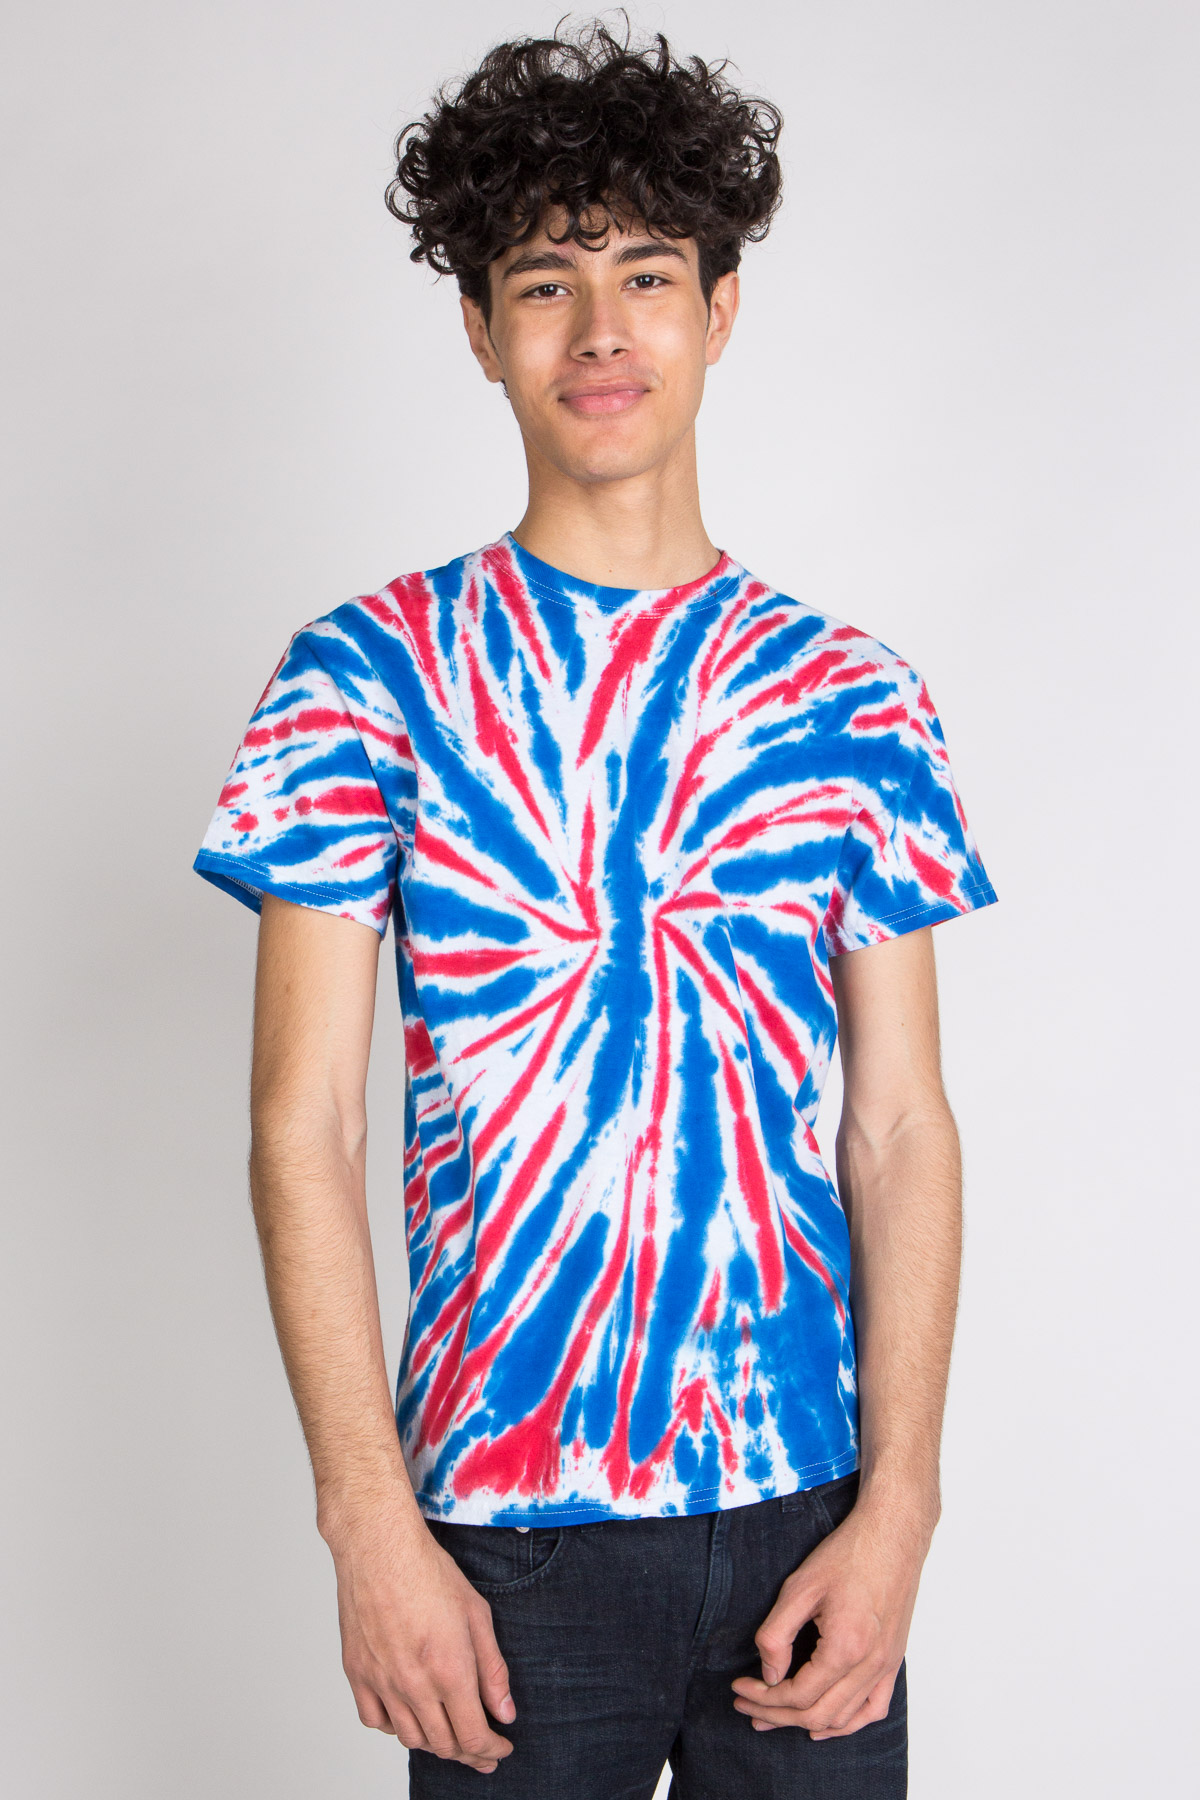 blue red and white swirl tie dye tee shirt